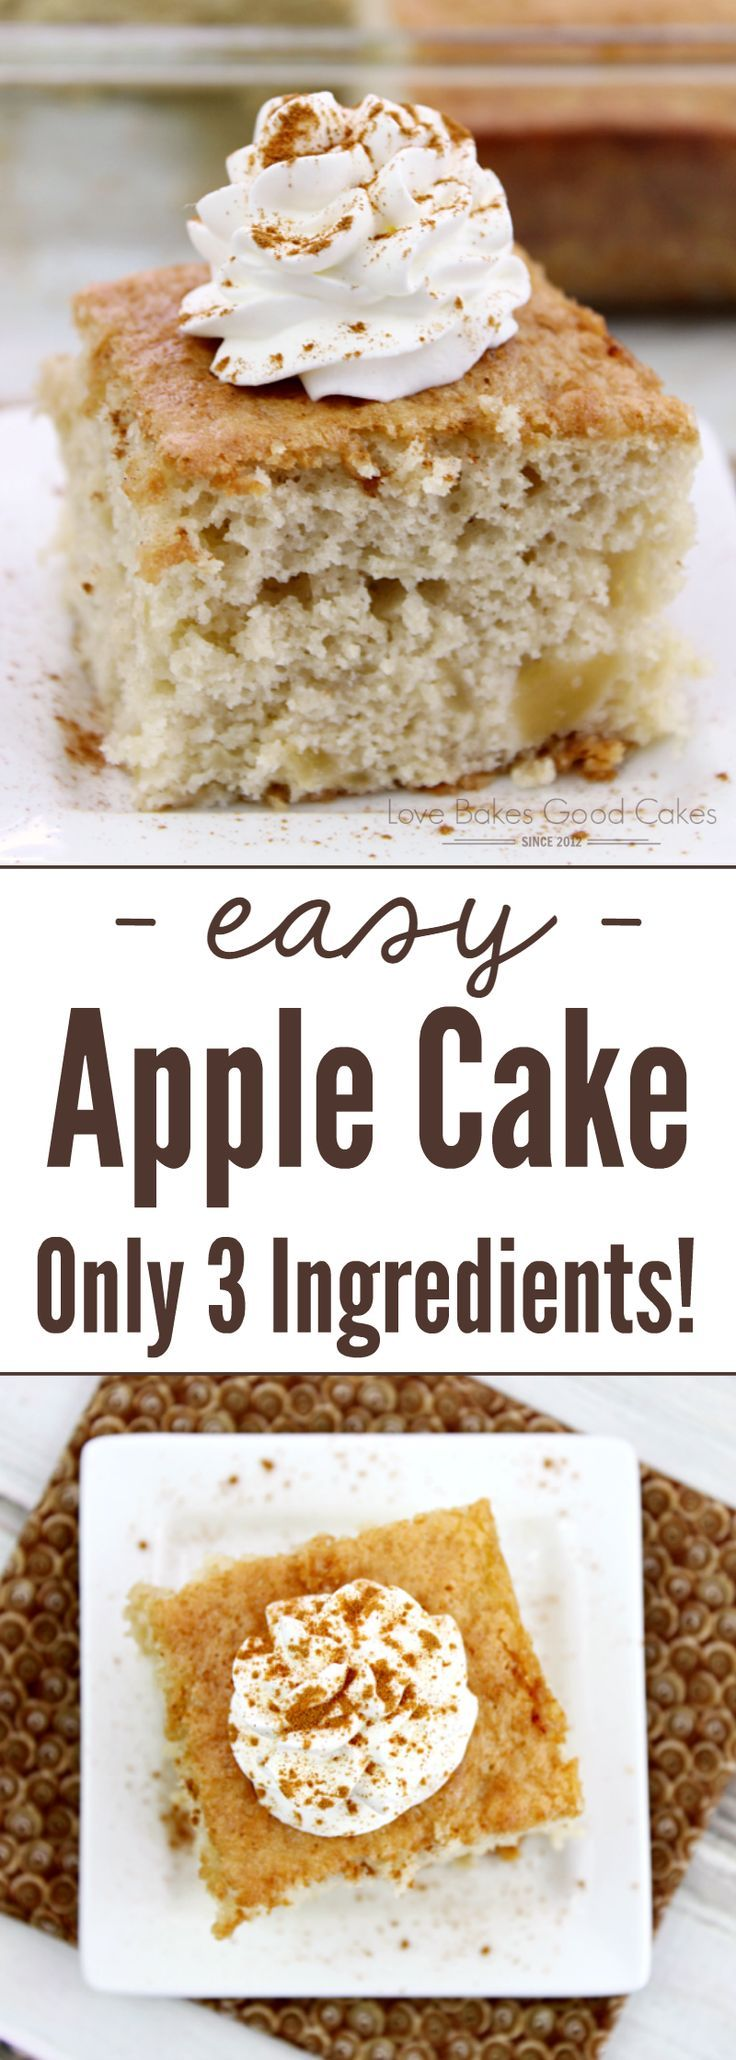 With only 3 ingredients, this Easy Apple Cake is perfect for Fall Baking!